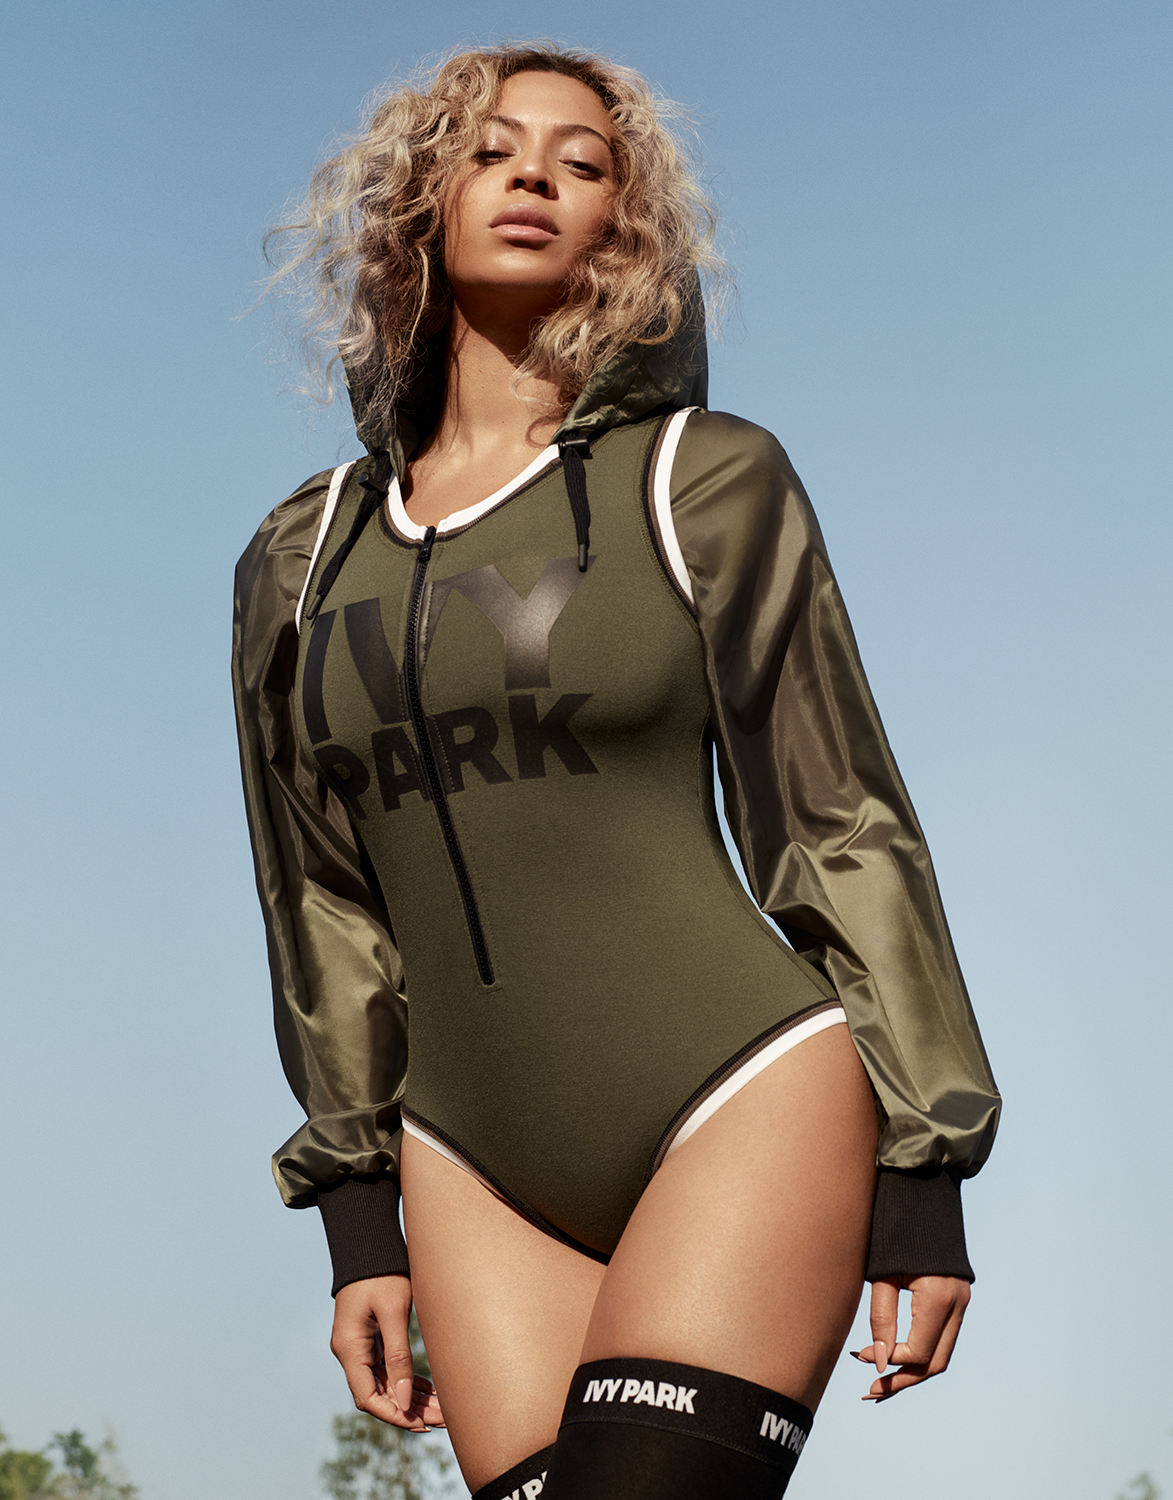 New Ivy Park Campaign - Lead